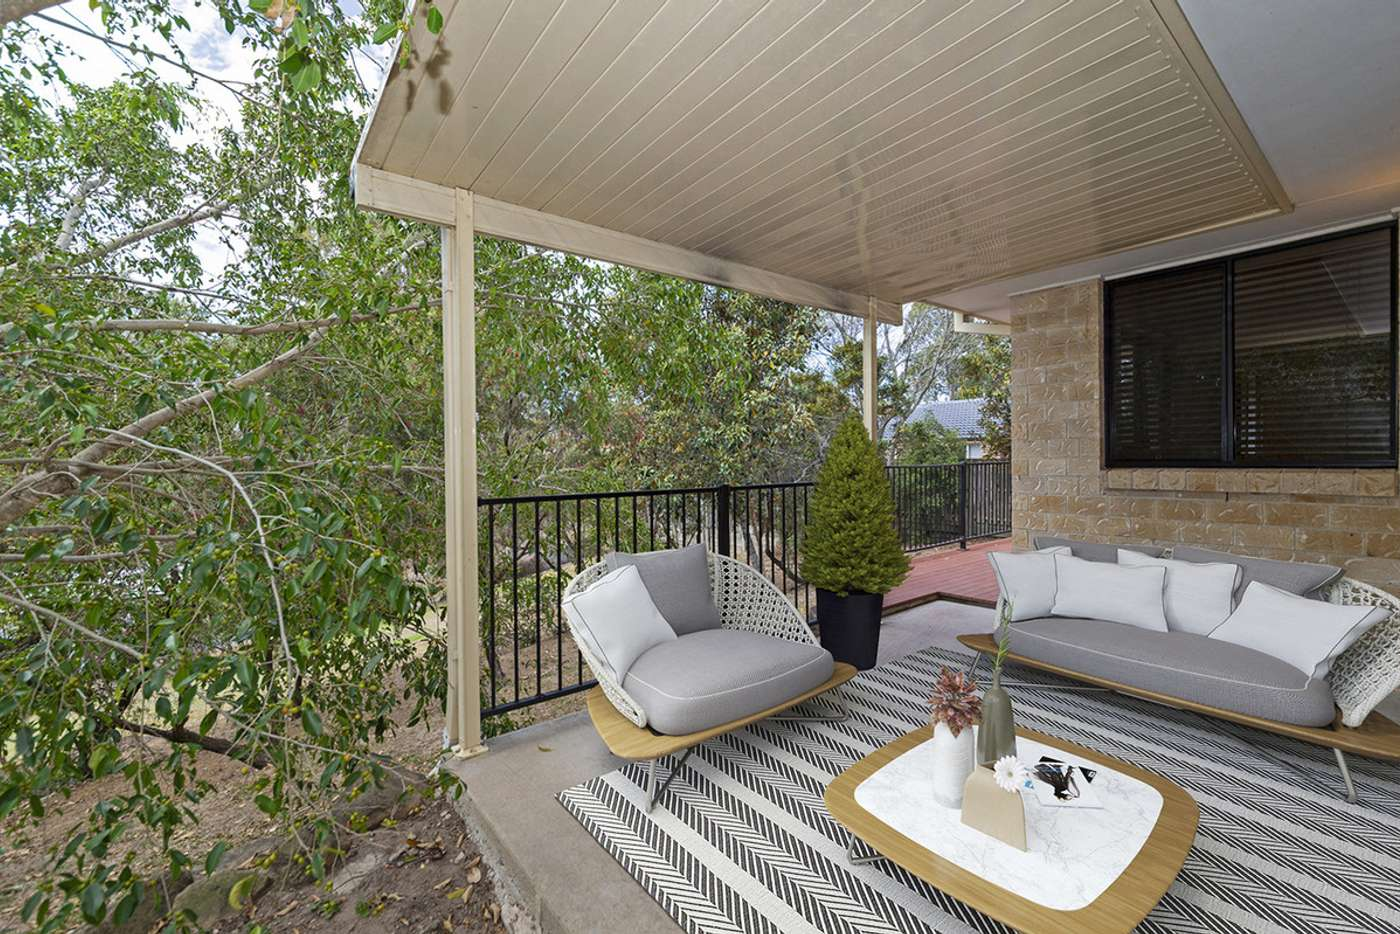 Sixth view of Homely house listing, 19 Lucas Crescent, Ormeau Hills QLD 4208